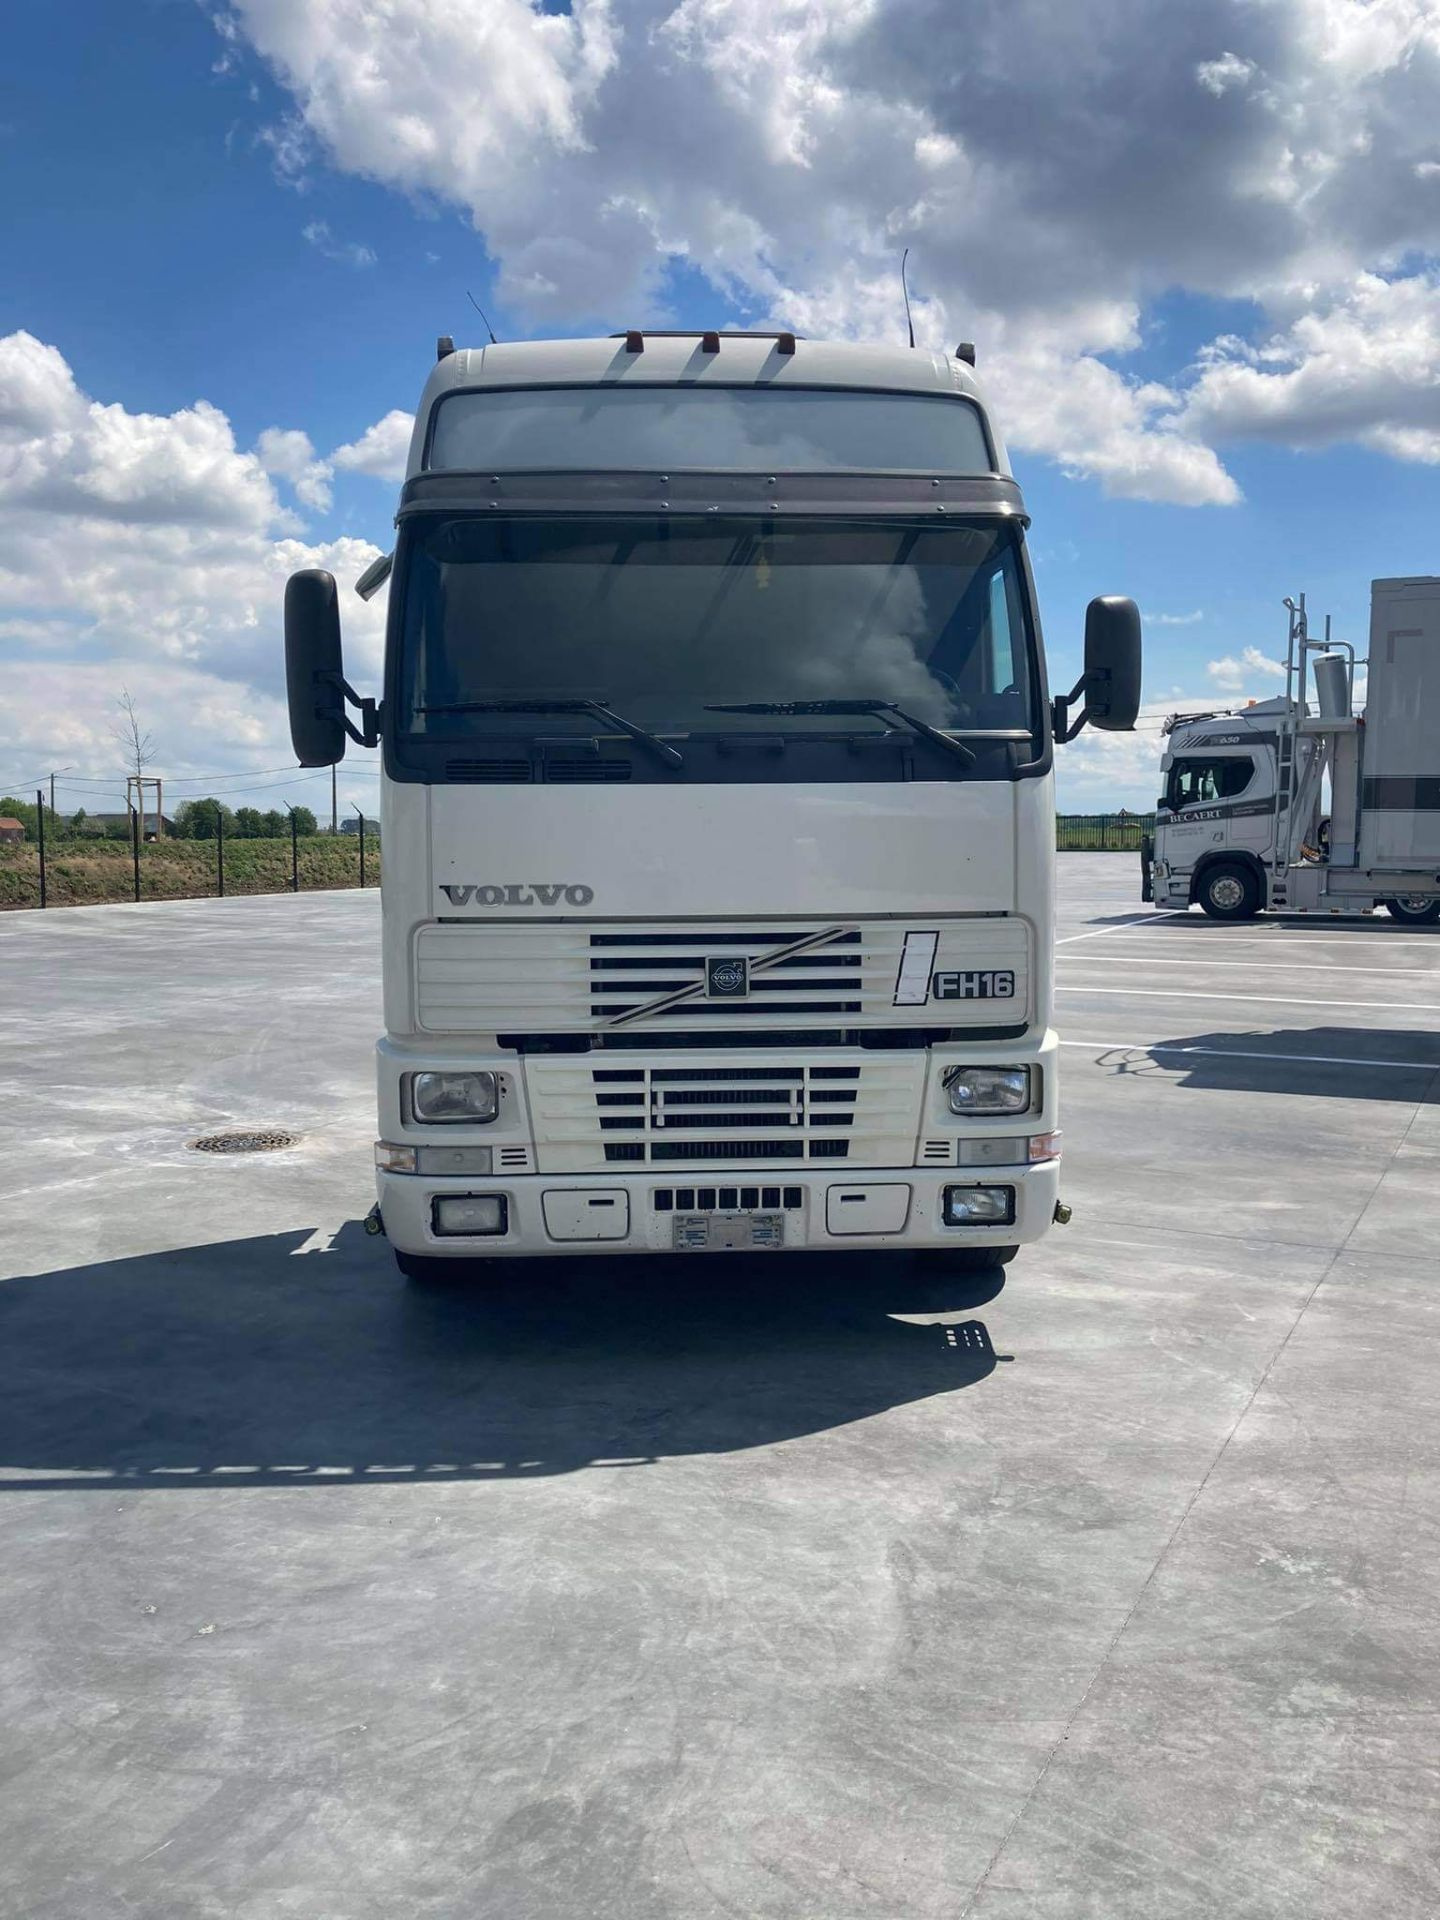 Volvo FH16 VERSION 1 4X2 TRACTOR UNIT, 2000, (Ex Italy) left hand drive, original condition ( - Image 3 of 12